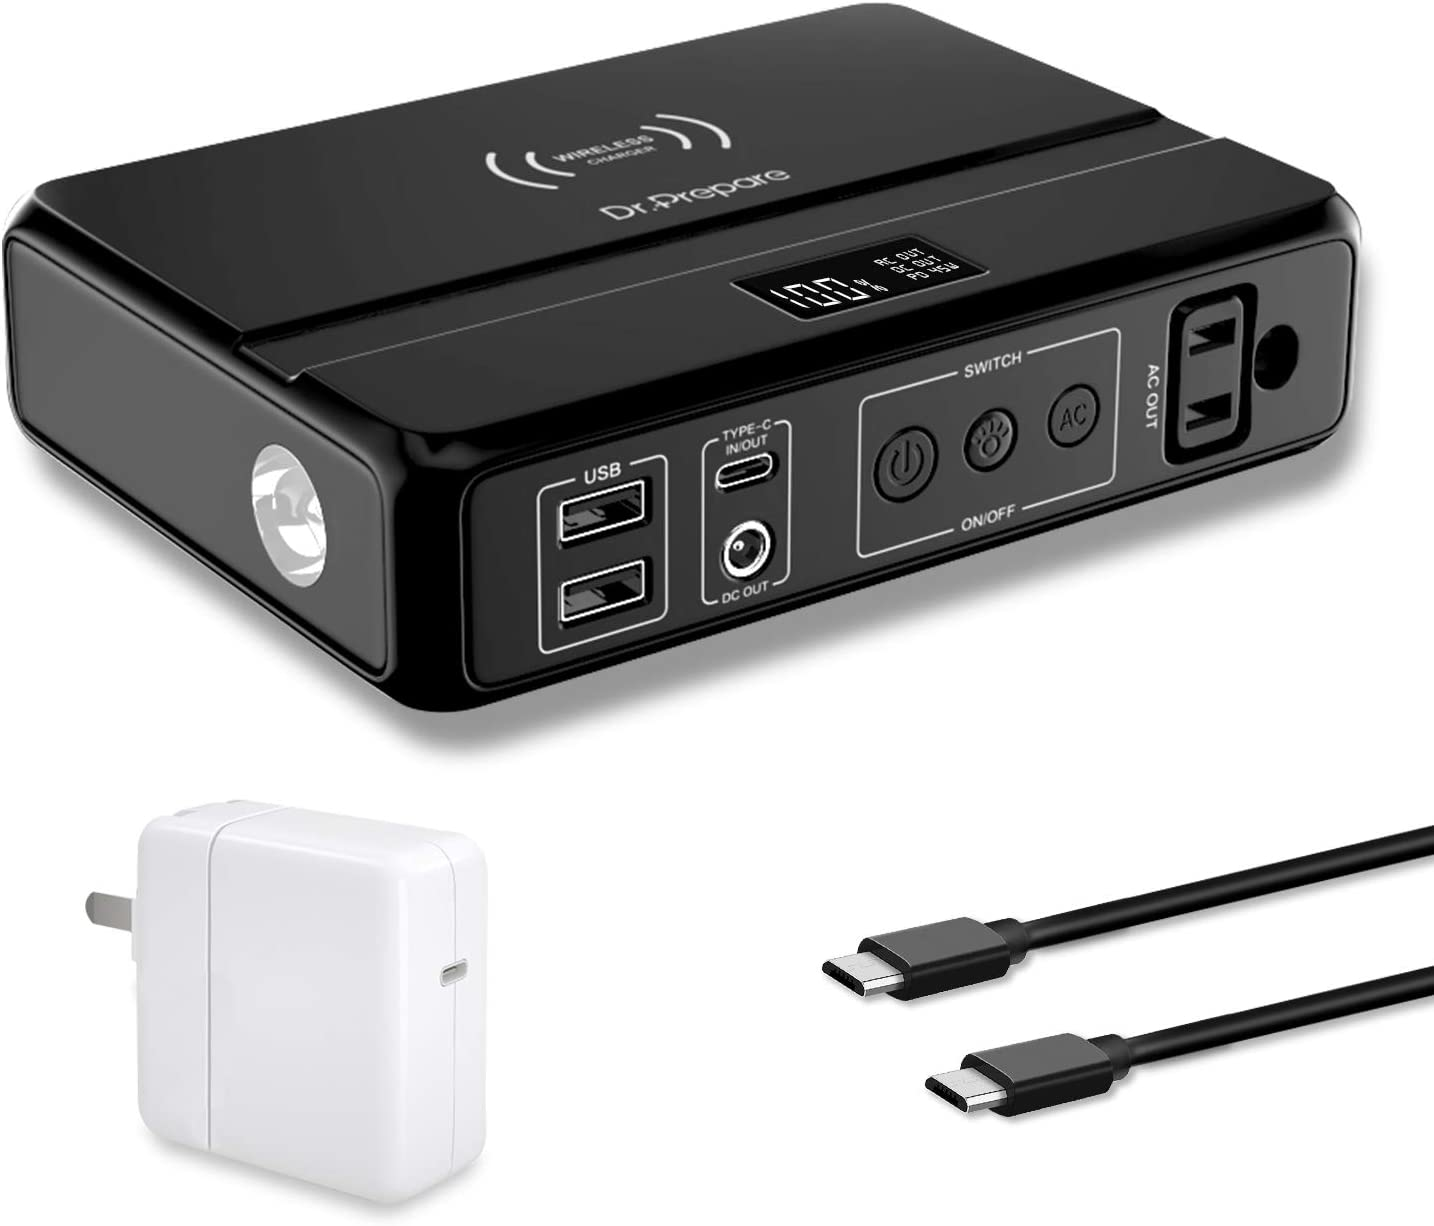 Portable Laptop Charger 85W AC Outlet, Dr. Prepare 83Wh/22500mAh Laptop Power Bank with 45W PD USB C, 10W Wireless Charging for Laptop MacBook iPad Pro Phones Tablets(45W USB C Charger Included)